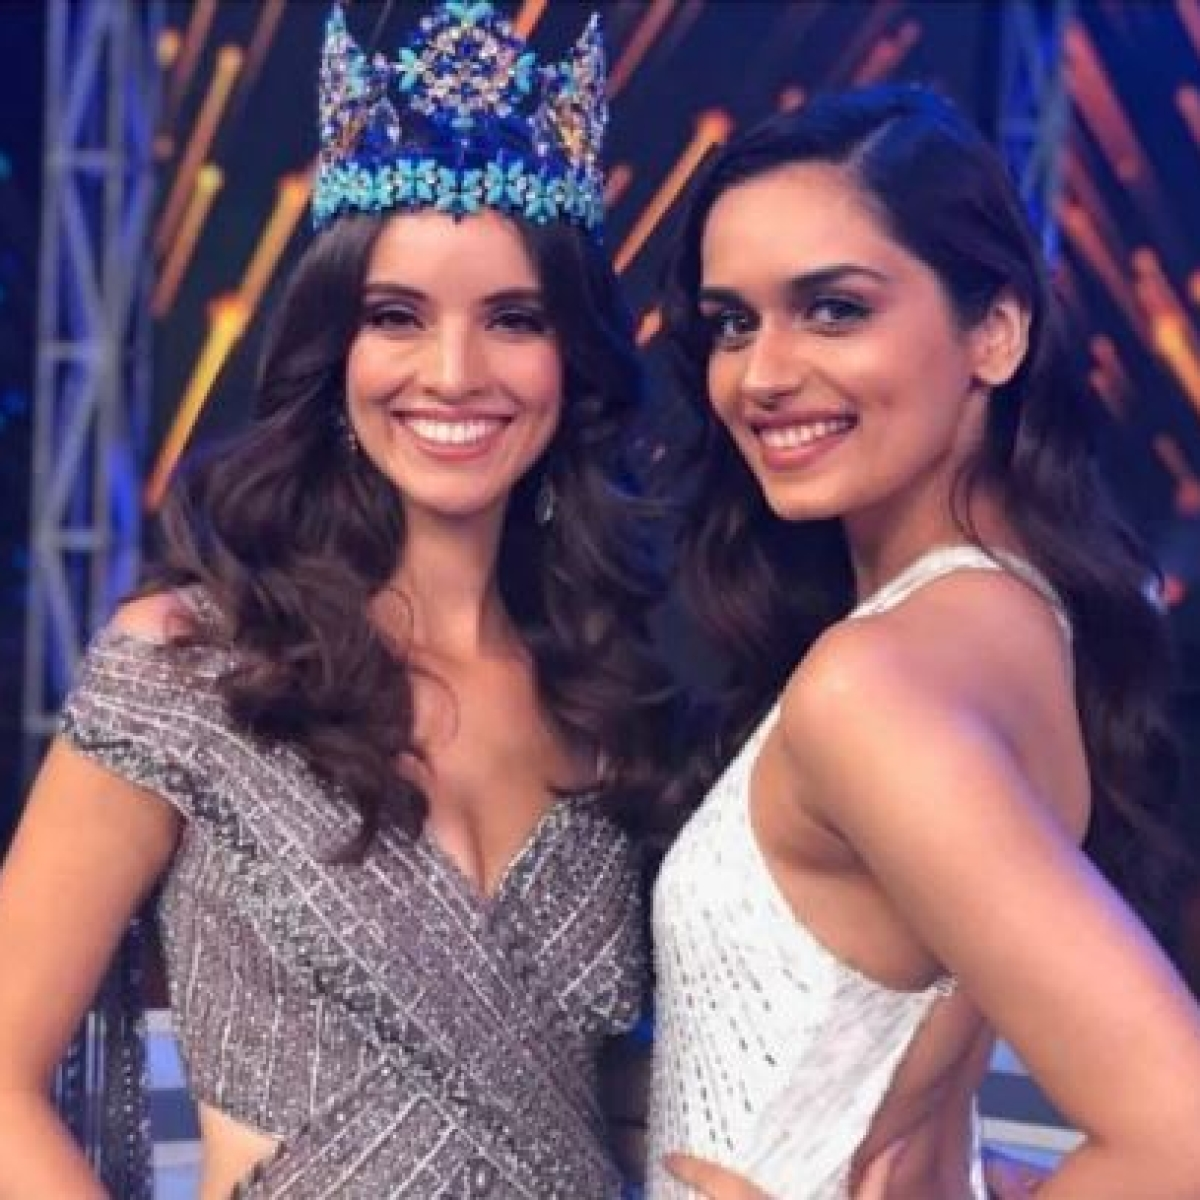 Manushi Chillar and other Miss Worlds come together to raise coronavirus awareness